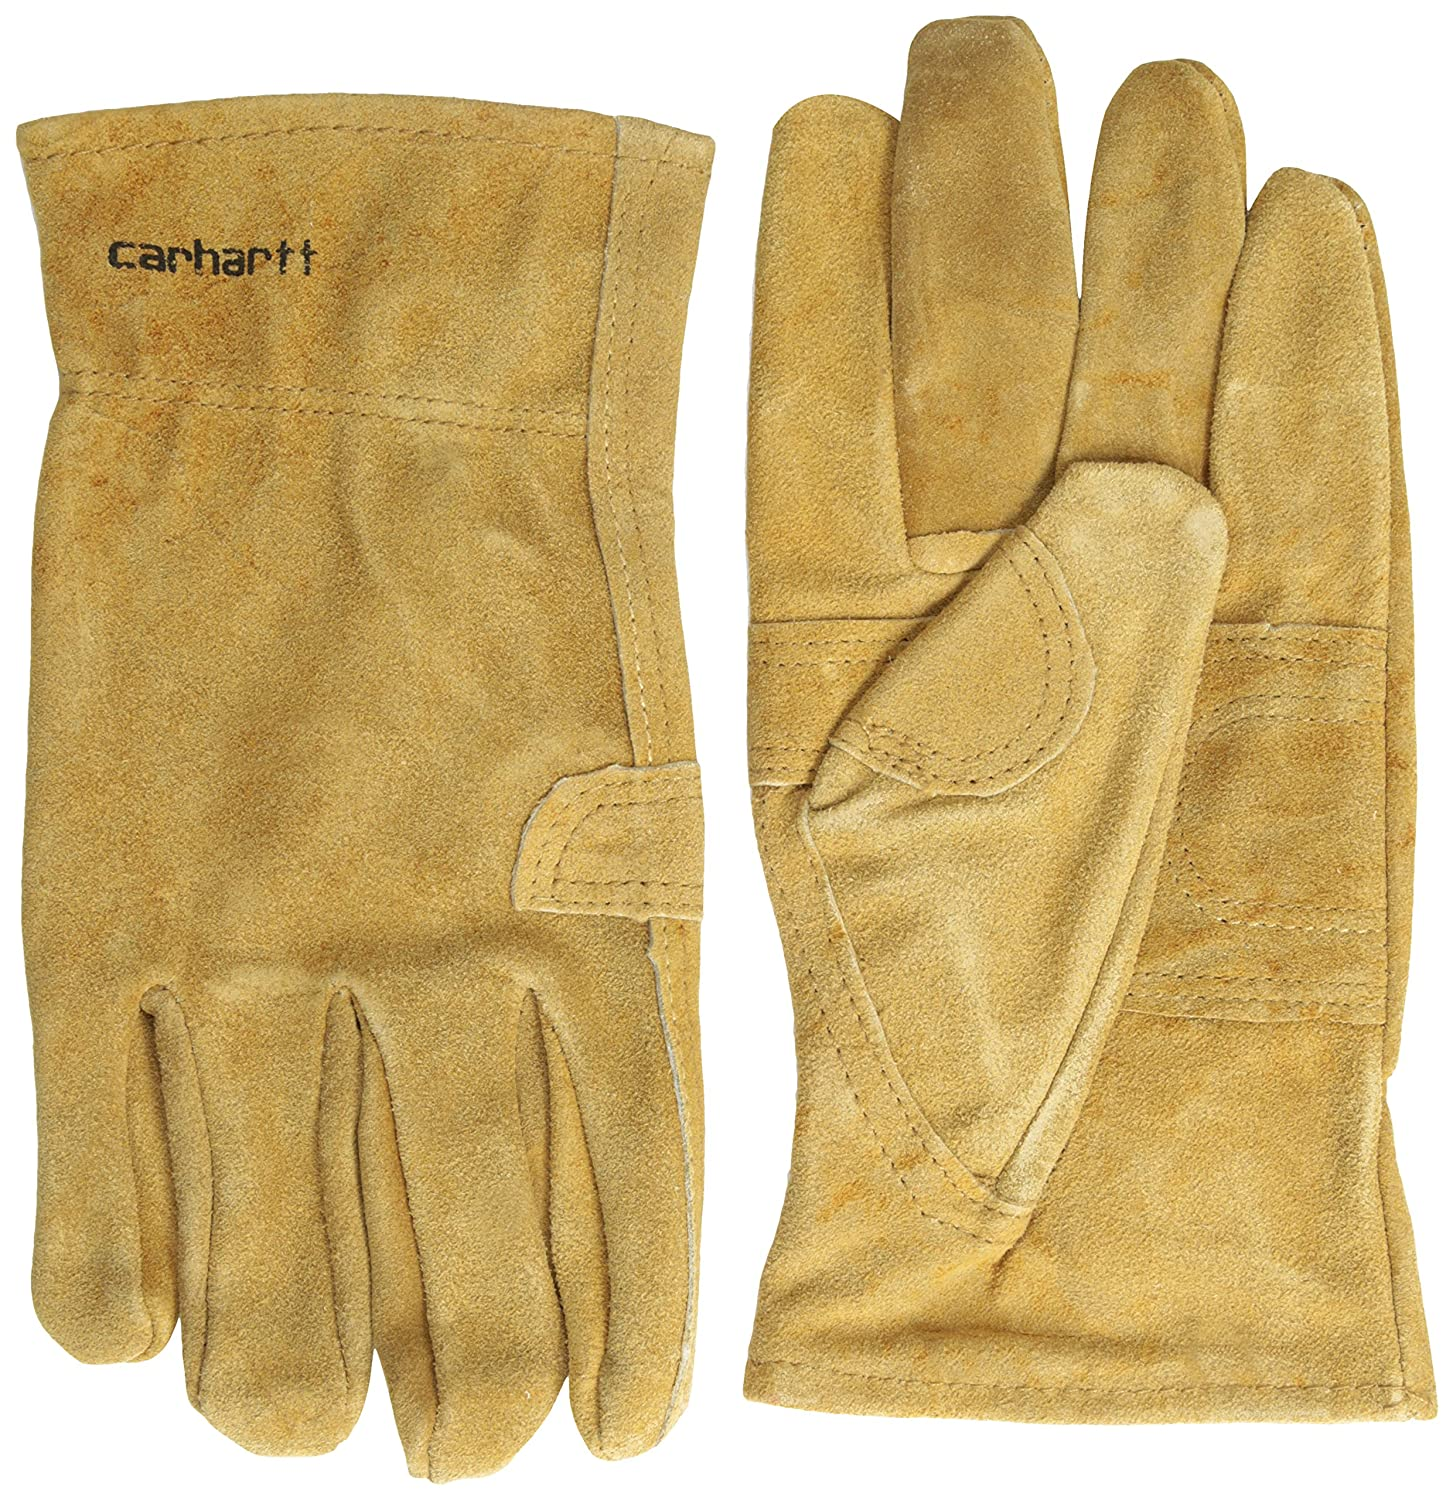 Leather work gloves sale - Amazon Com Carhartt Men S Leather Fencer Work Glove Brown Small Clothing